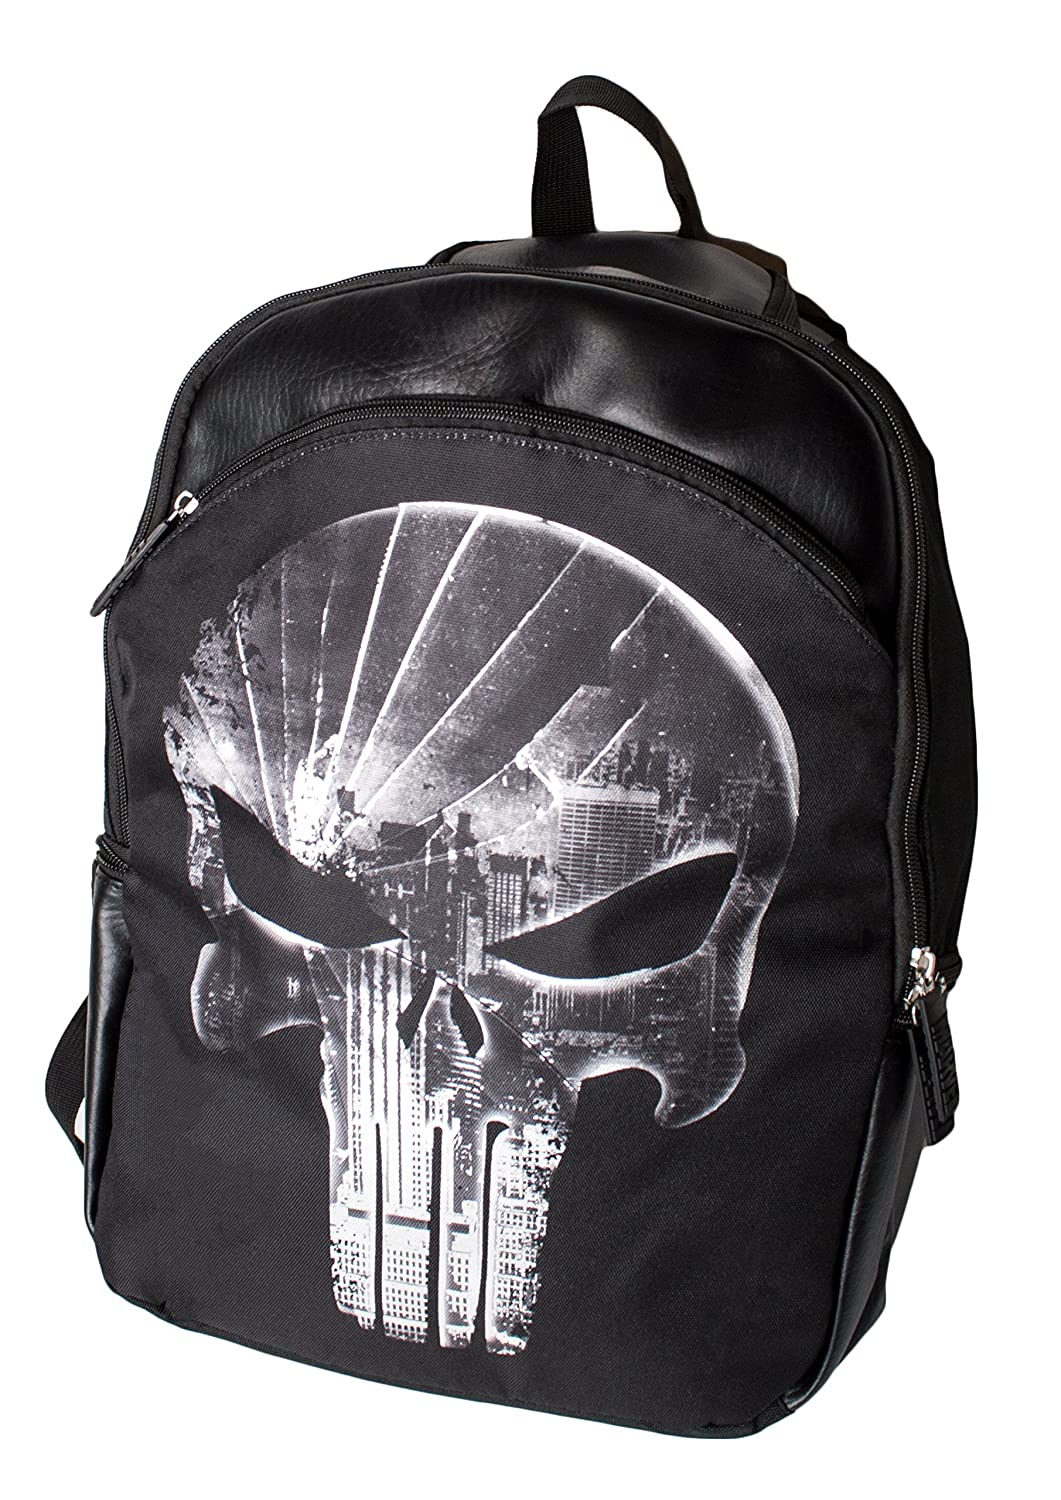 Happy Styles Zaino Marvel Superhero Punisher Skull i, nero Laptop Borsa scuola Taglia unica Nero